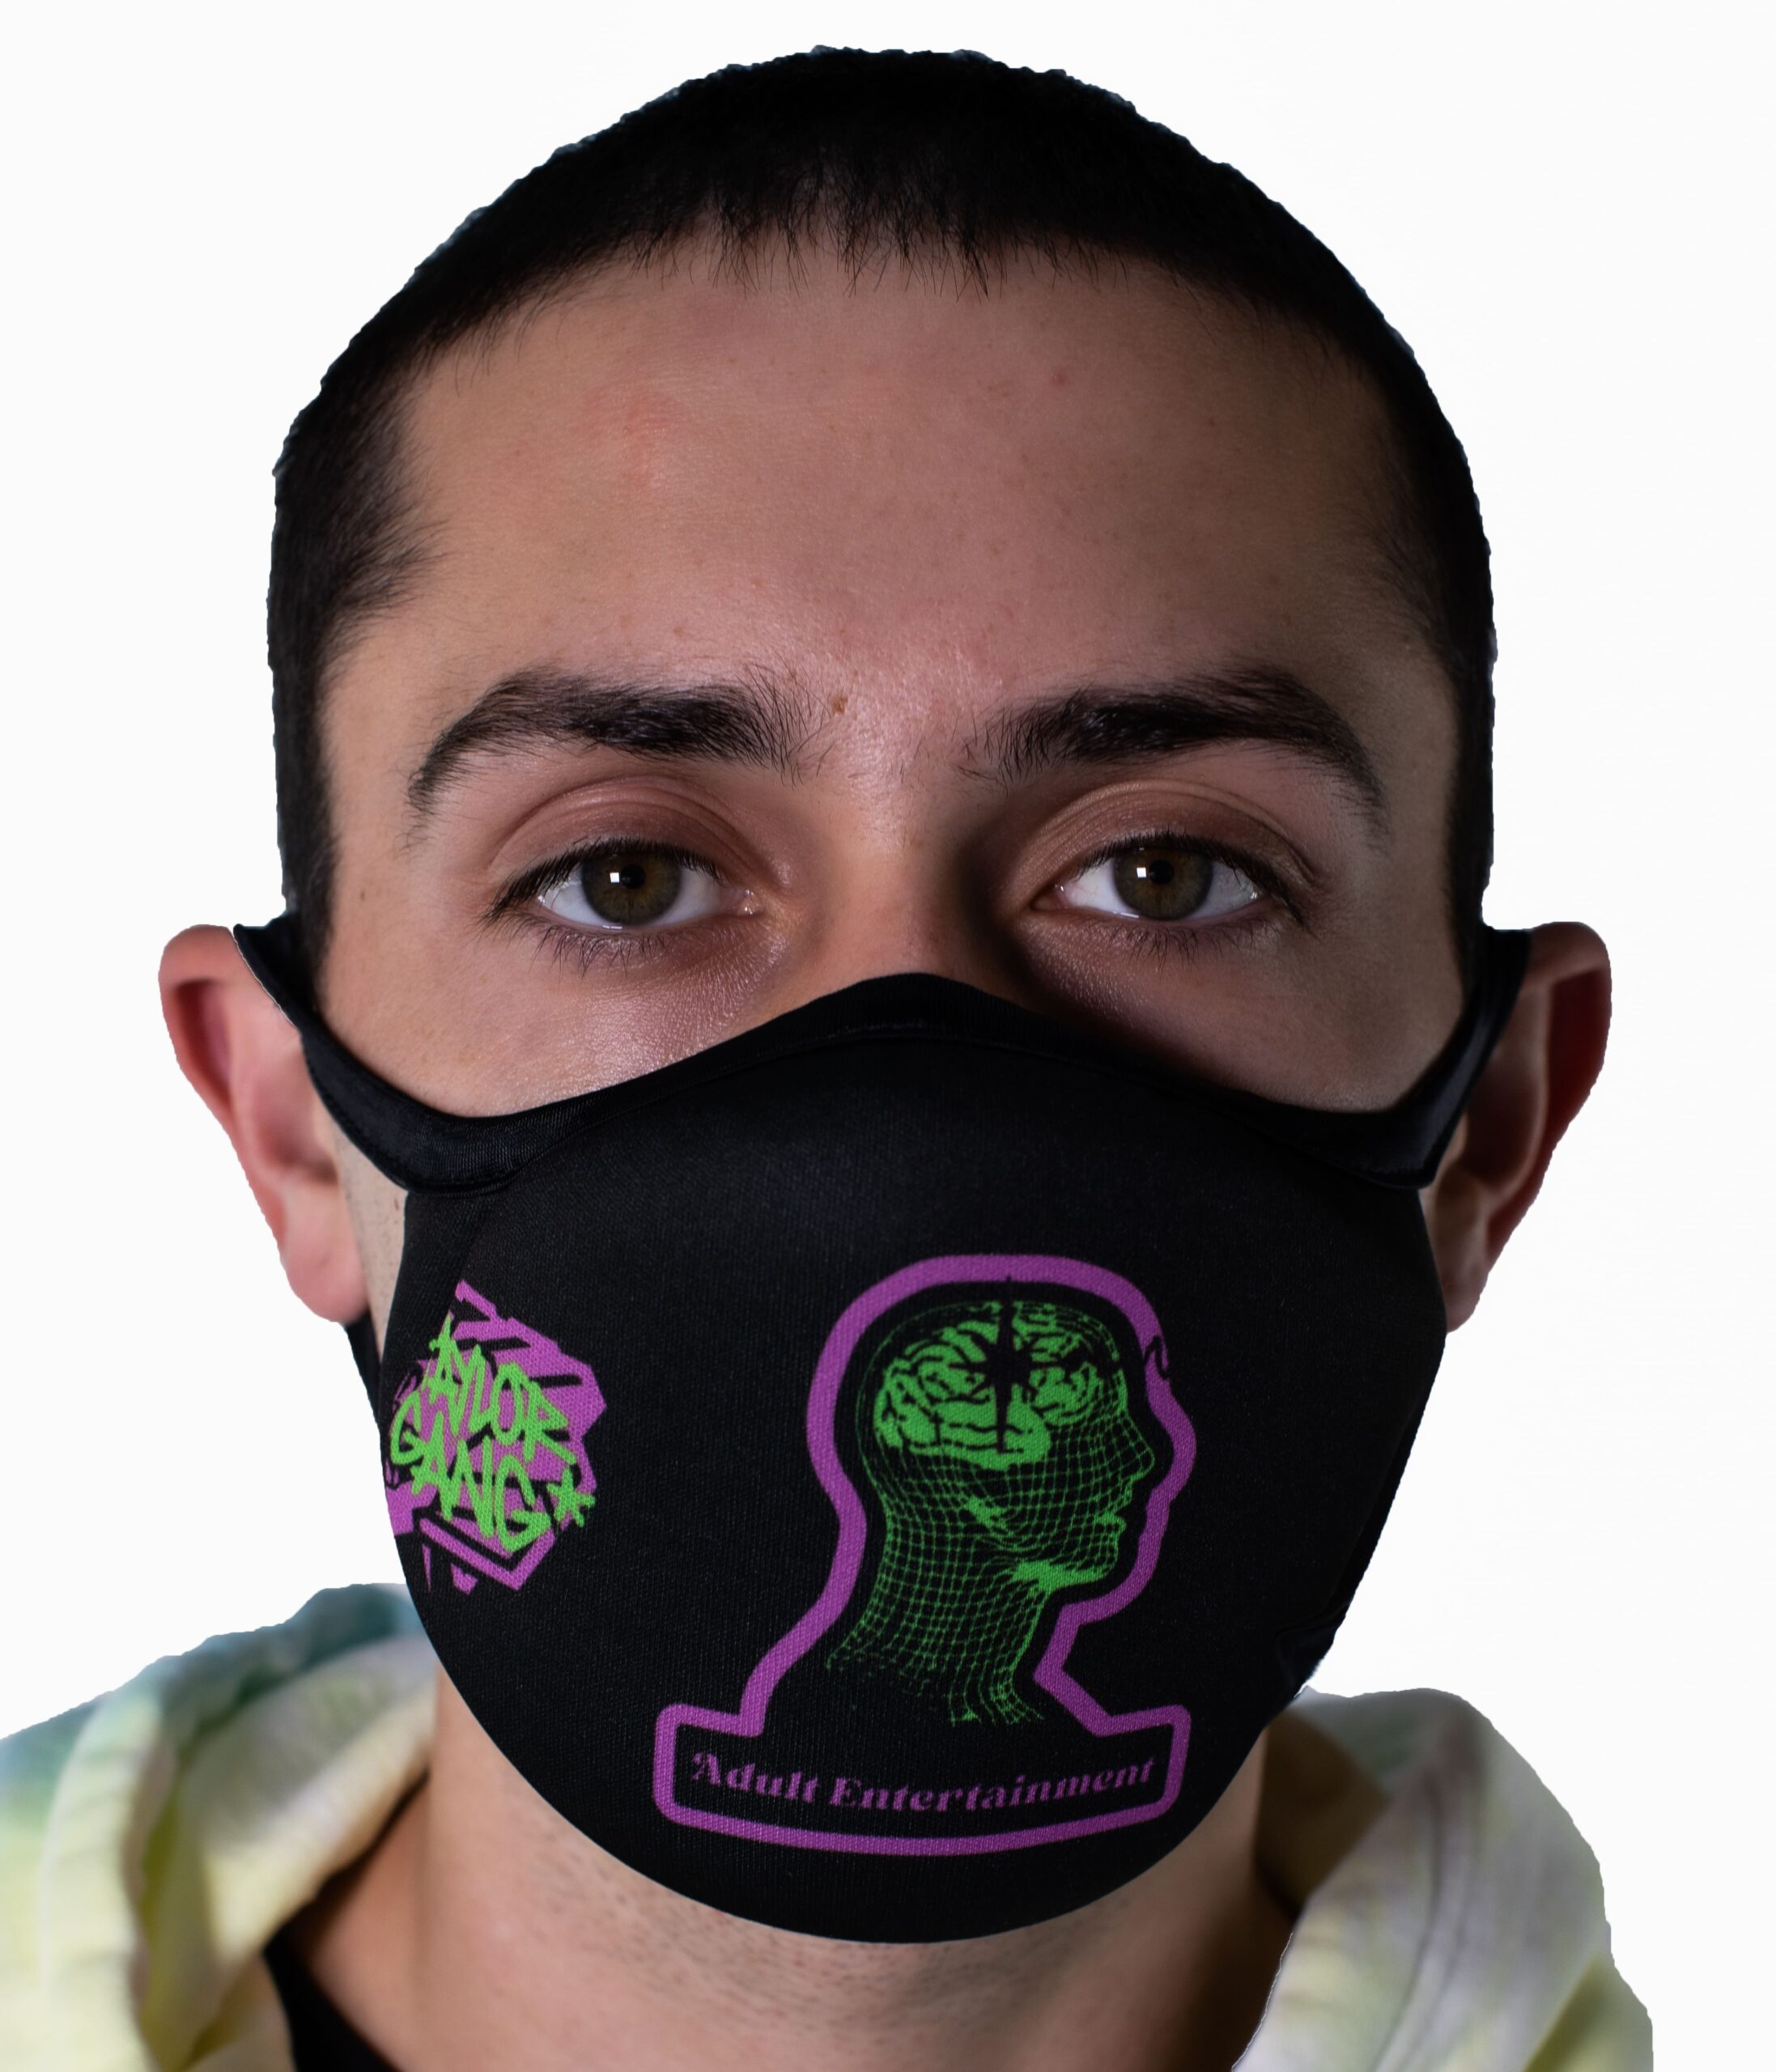 Adult Entertainment Mask